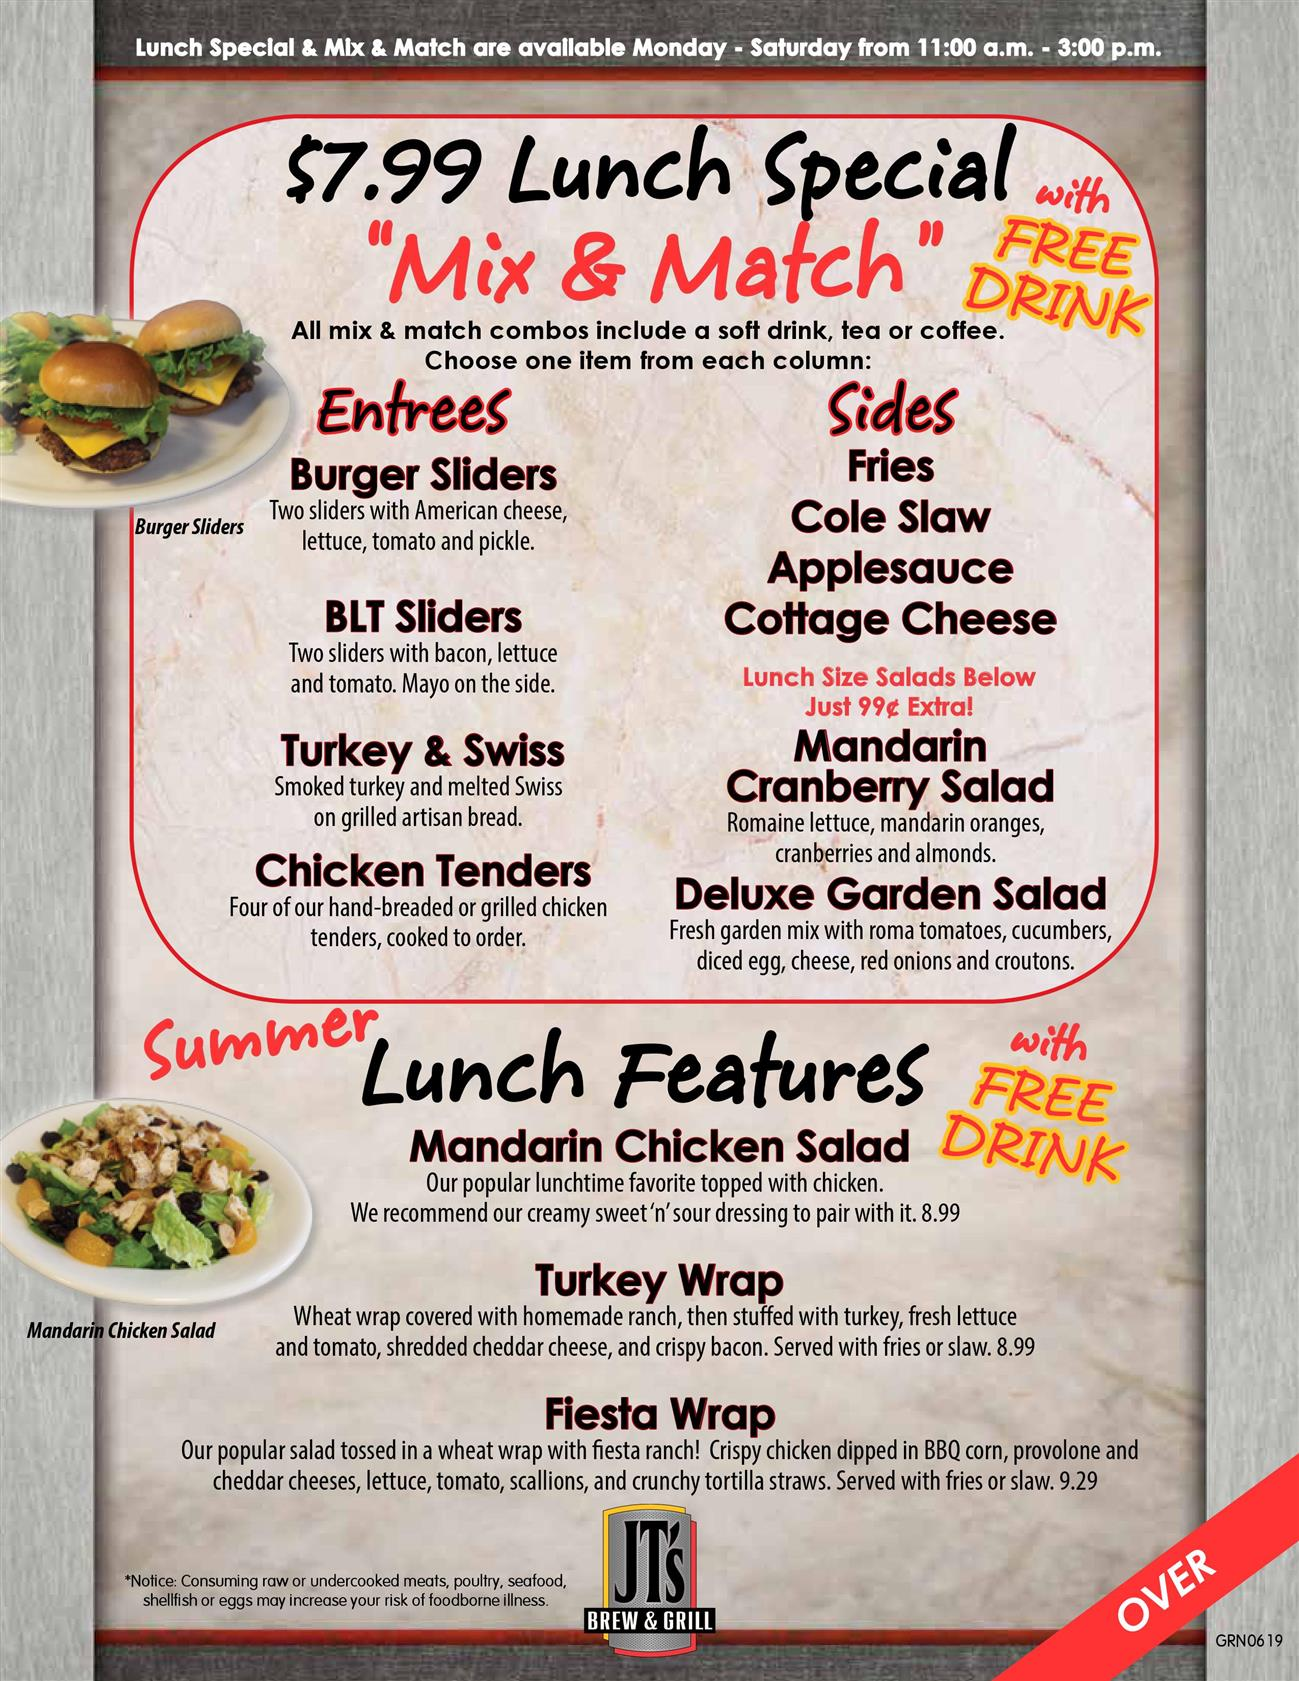 "$7.99 lunch special ""mix and match"" with free drink, burger sliders, BLT Sliders, Turkey and swiss, chicken tenders, mandarin cranberry salad, deluxe garden salad, sides: fries, cole slaw, applesauce, cottage cheese. Summer lunch features with free drink: mandarin chicken salad, turkey wrap, fiesta wrap"